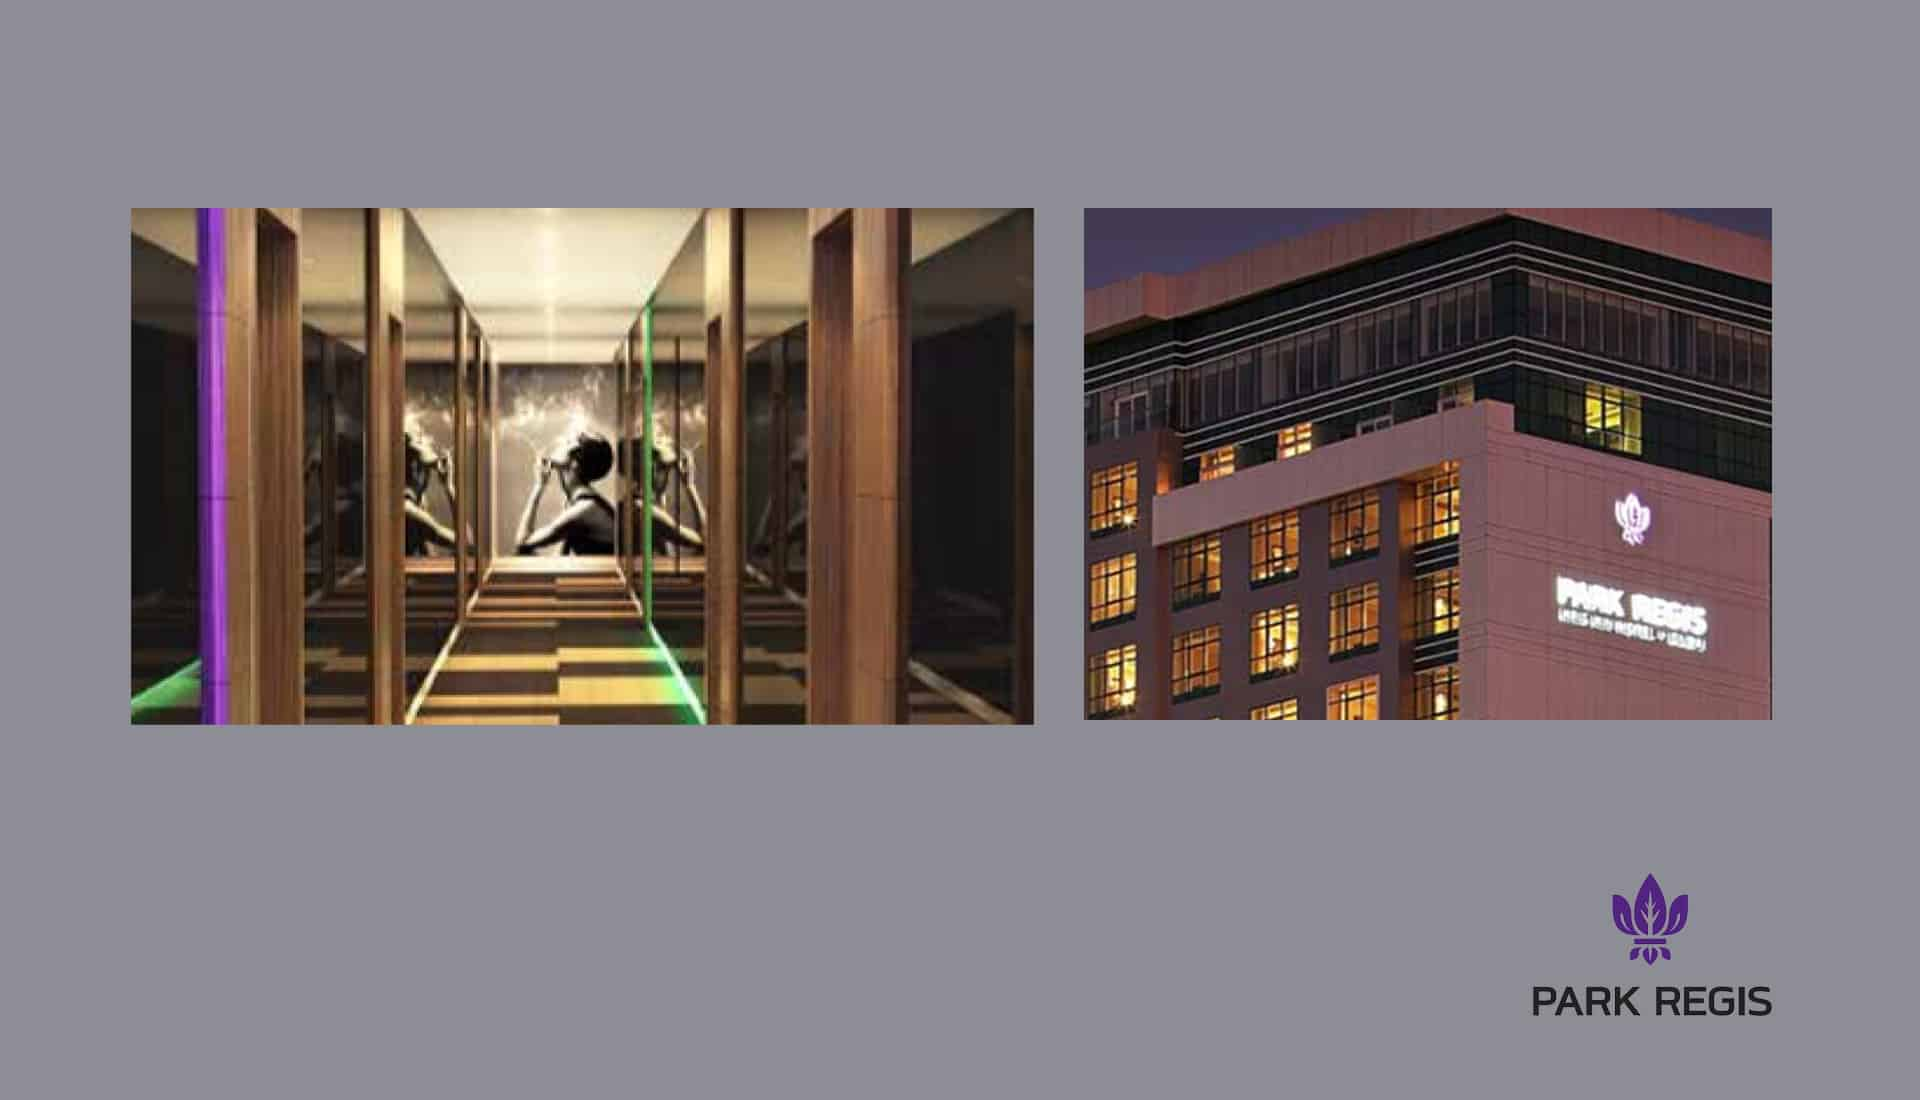 Park Regis hotel in Sydney hallway design drawing with artwork of vintage lady smoking cigarette on back wall and also image of the exterior of the building